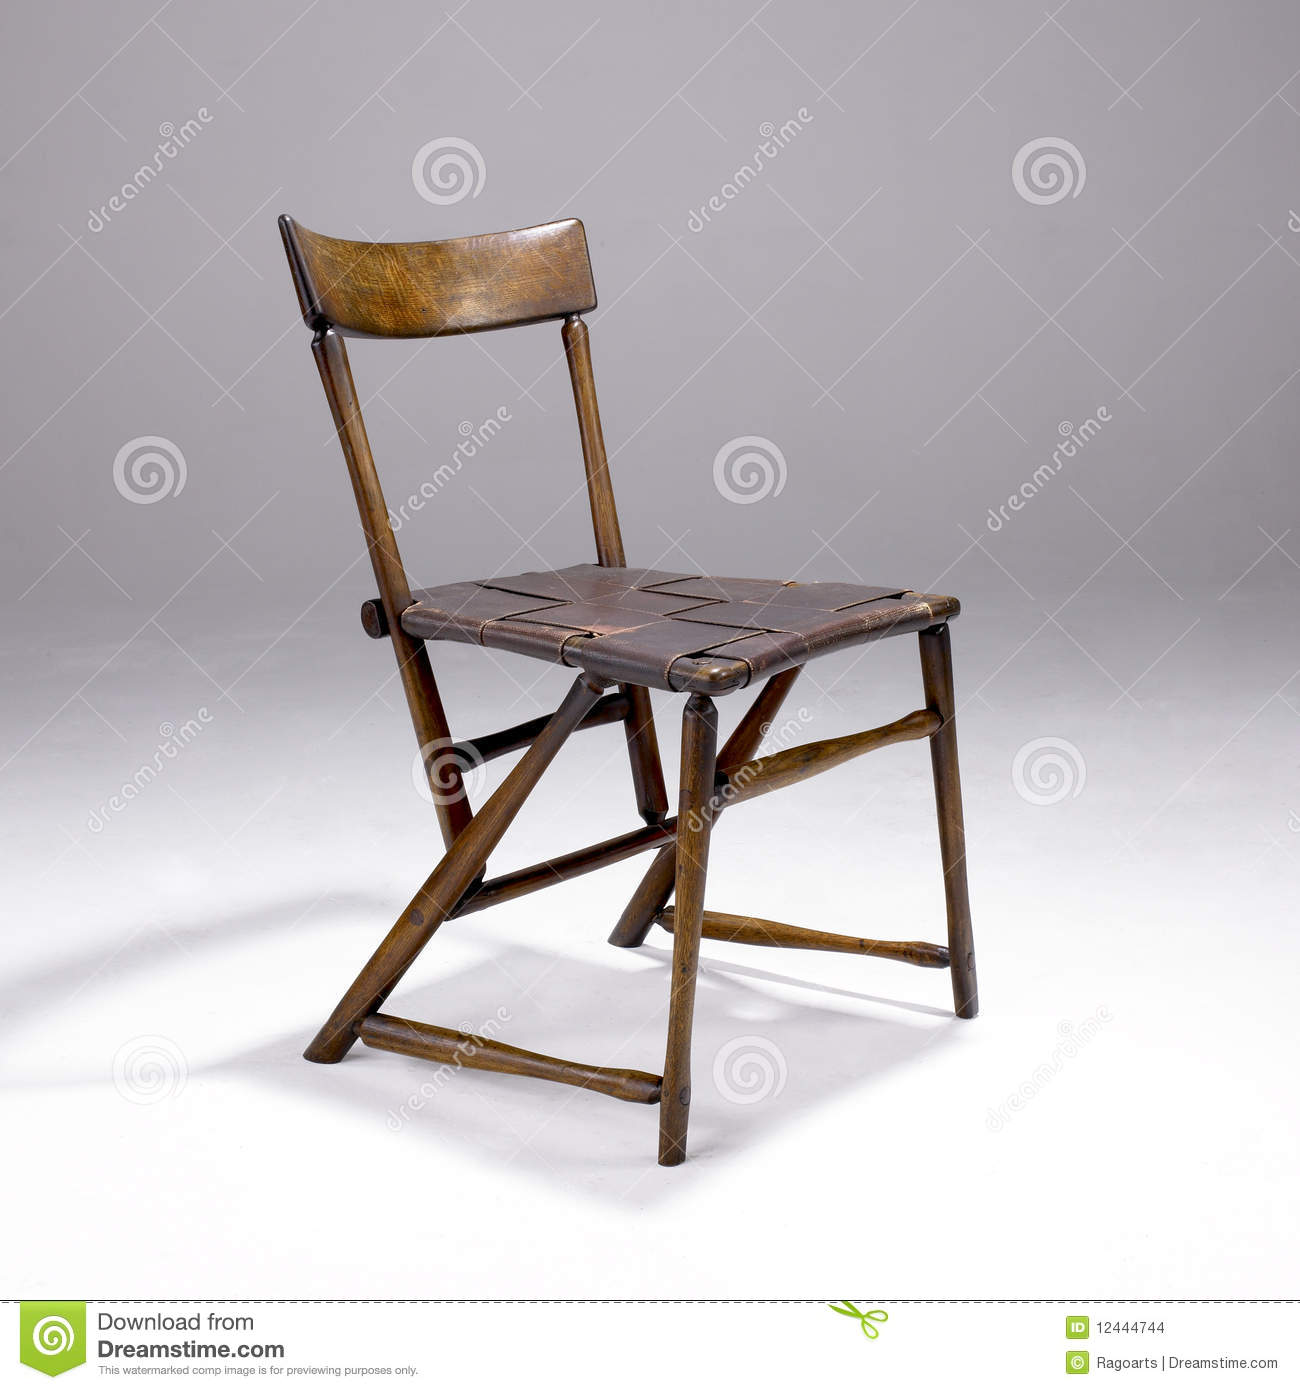 Iconic modern design chair editorial stock image image for Iconic modern chairs